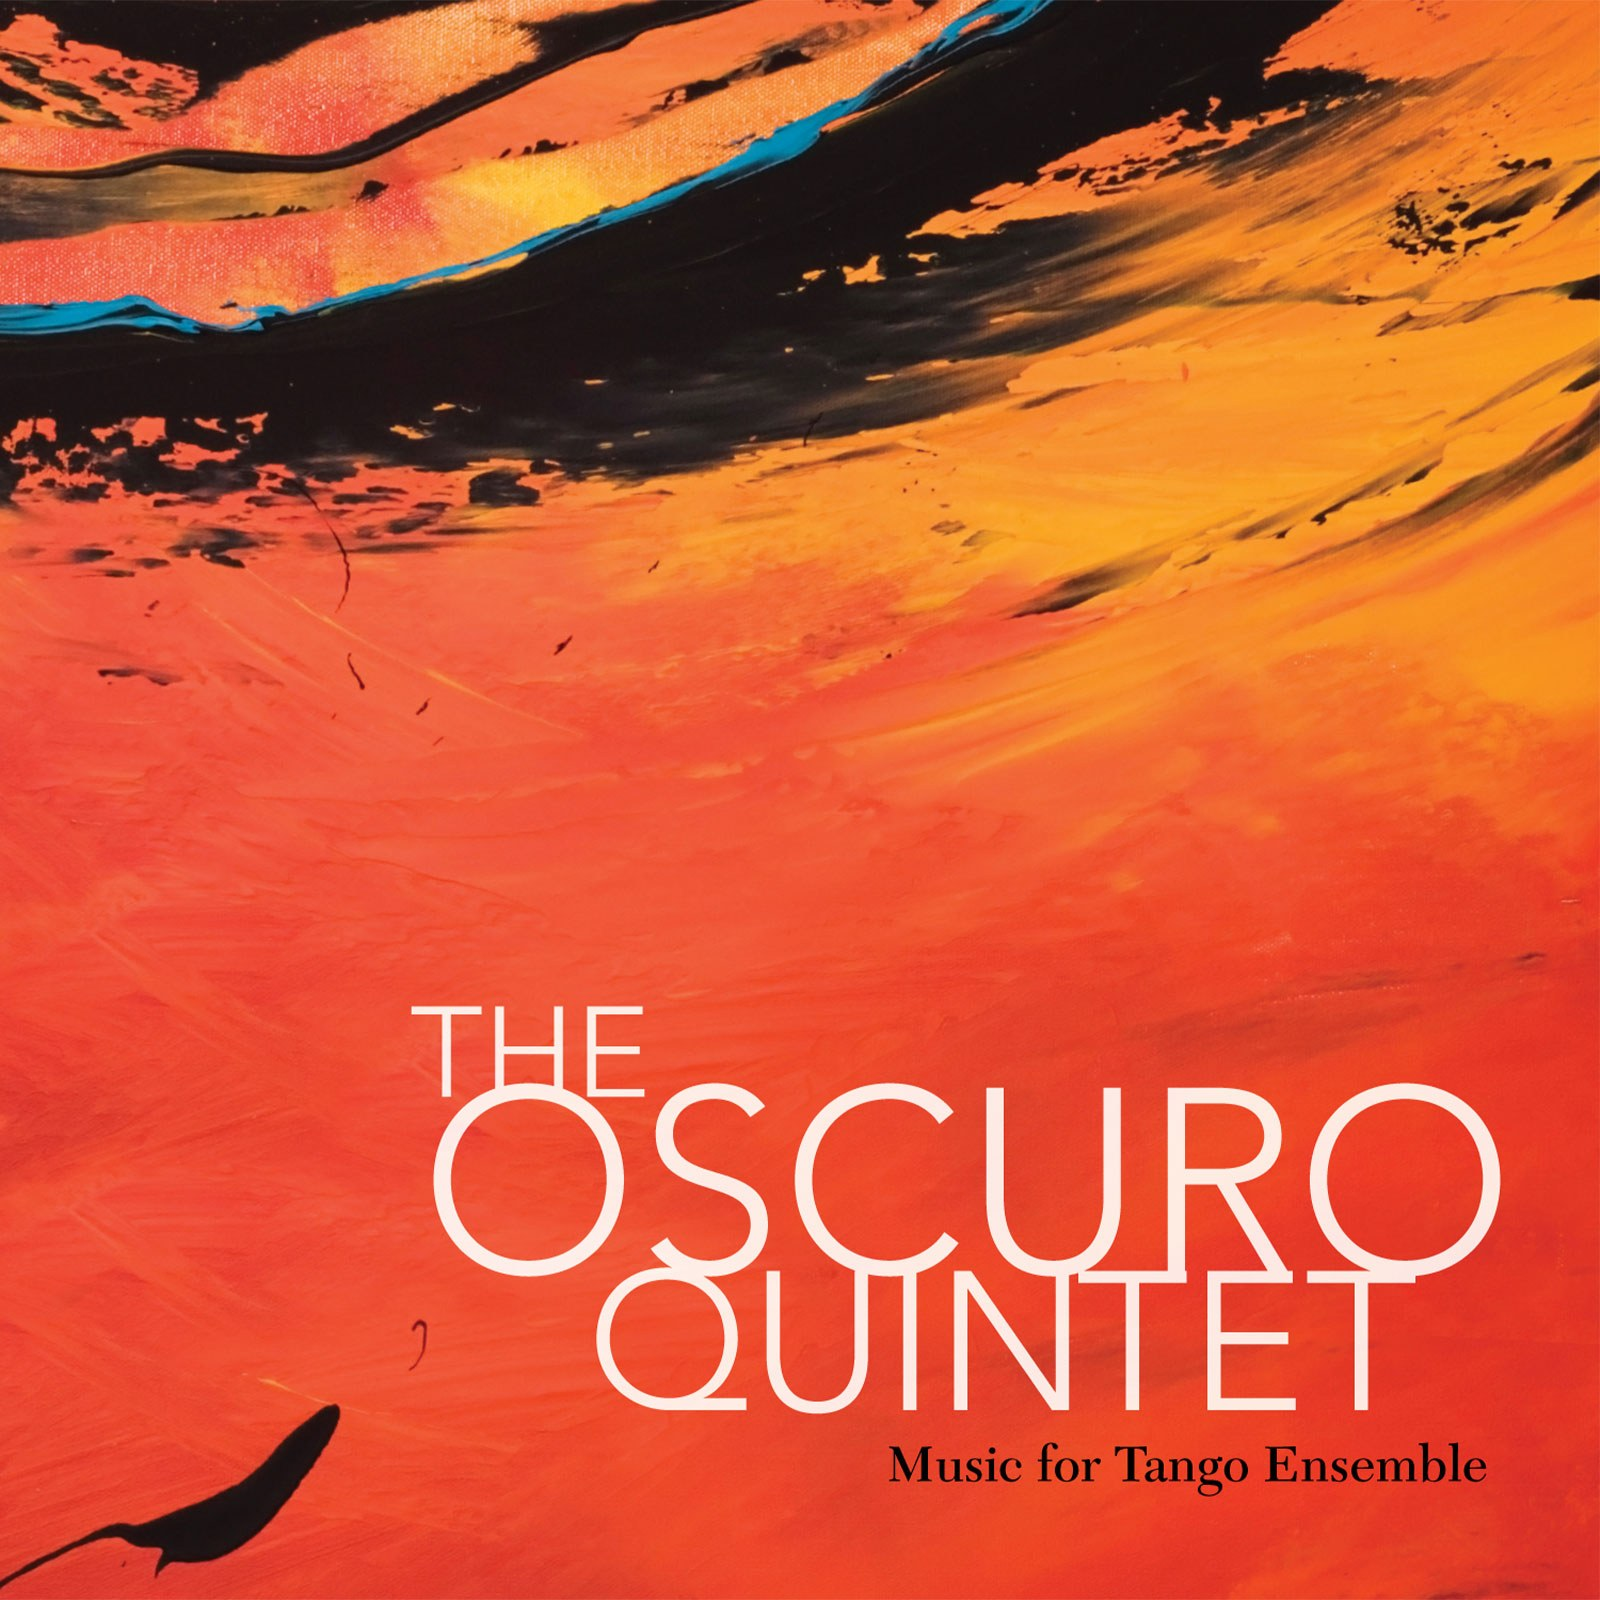 THE OSCURO QUINTET - Album Cover